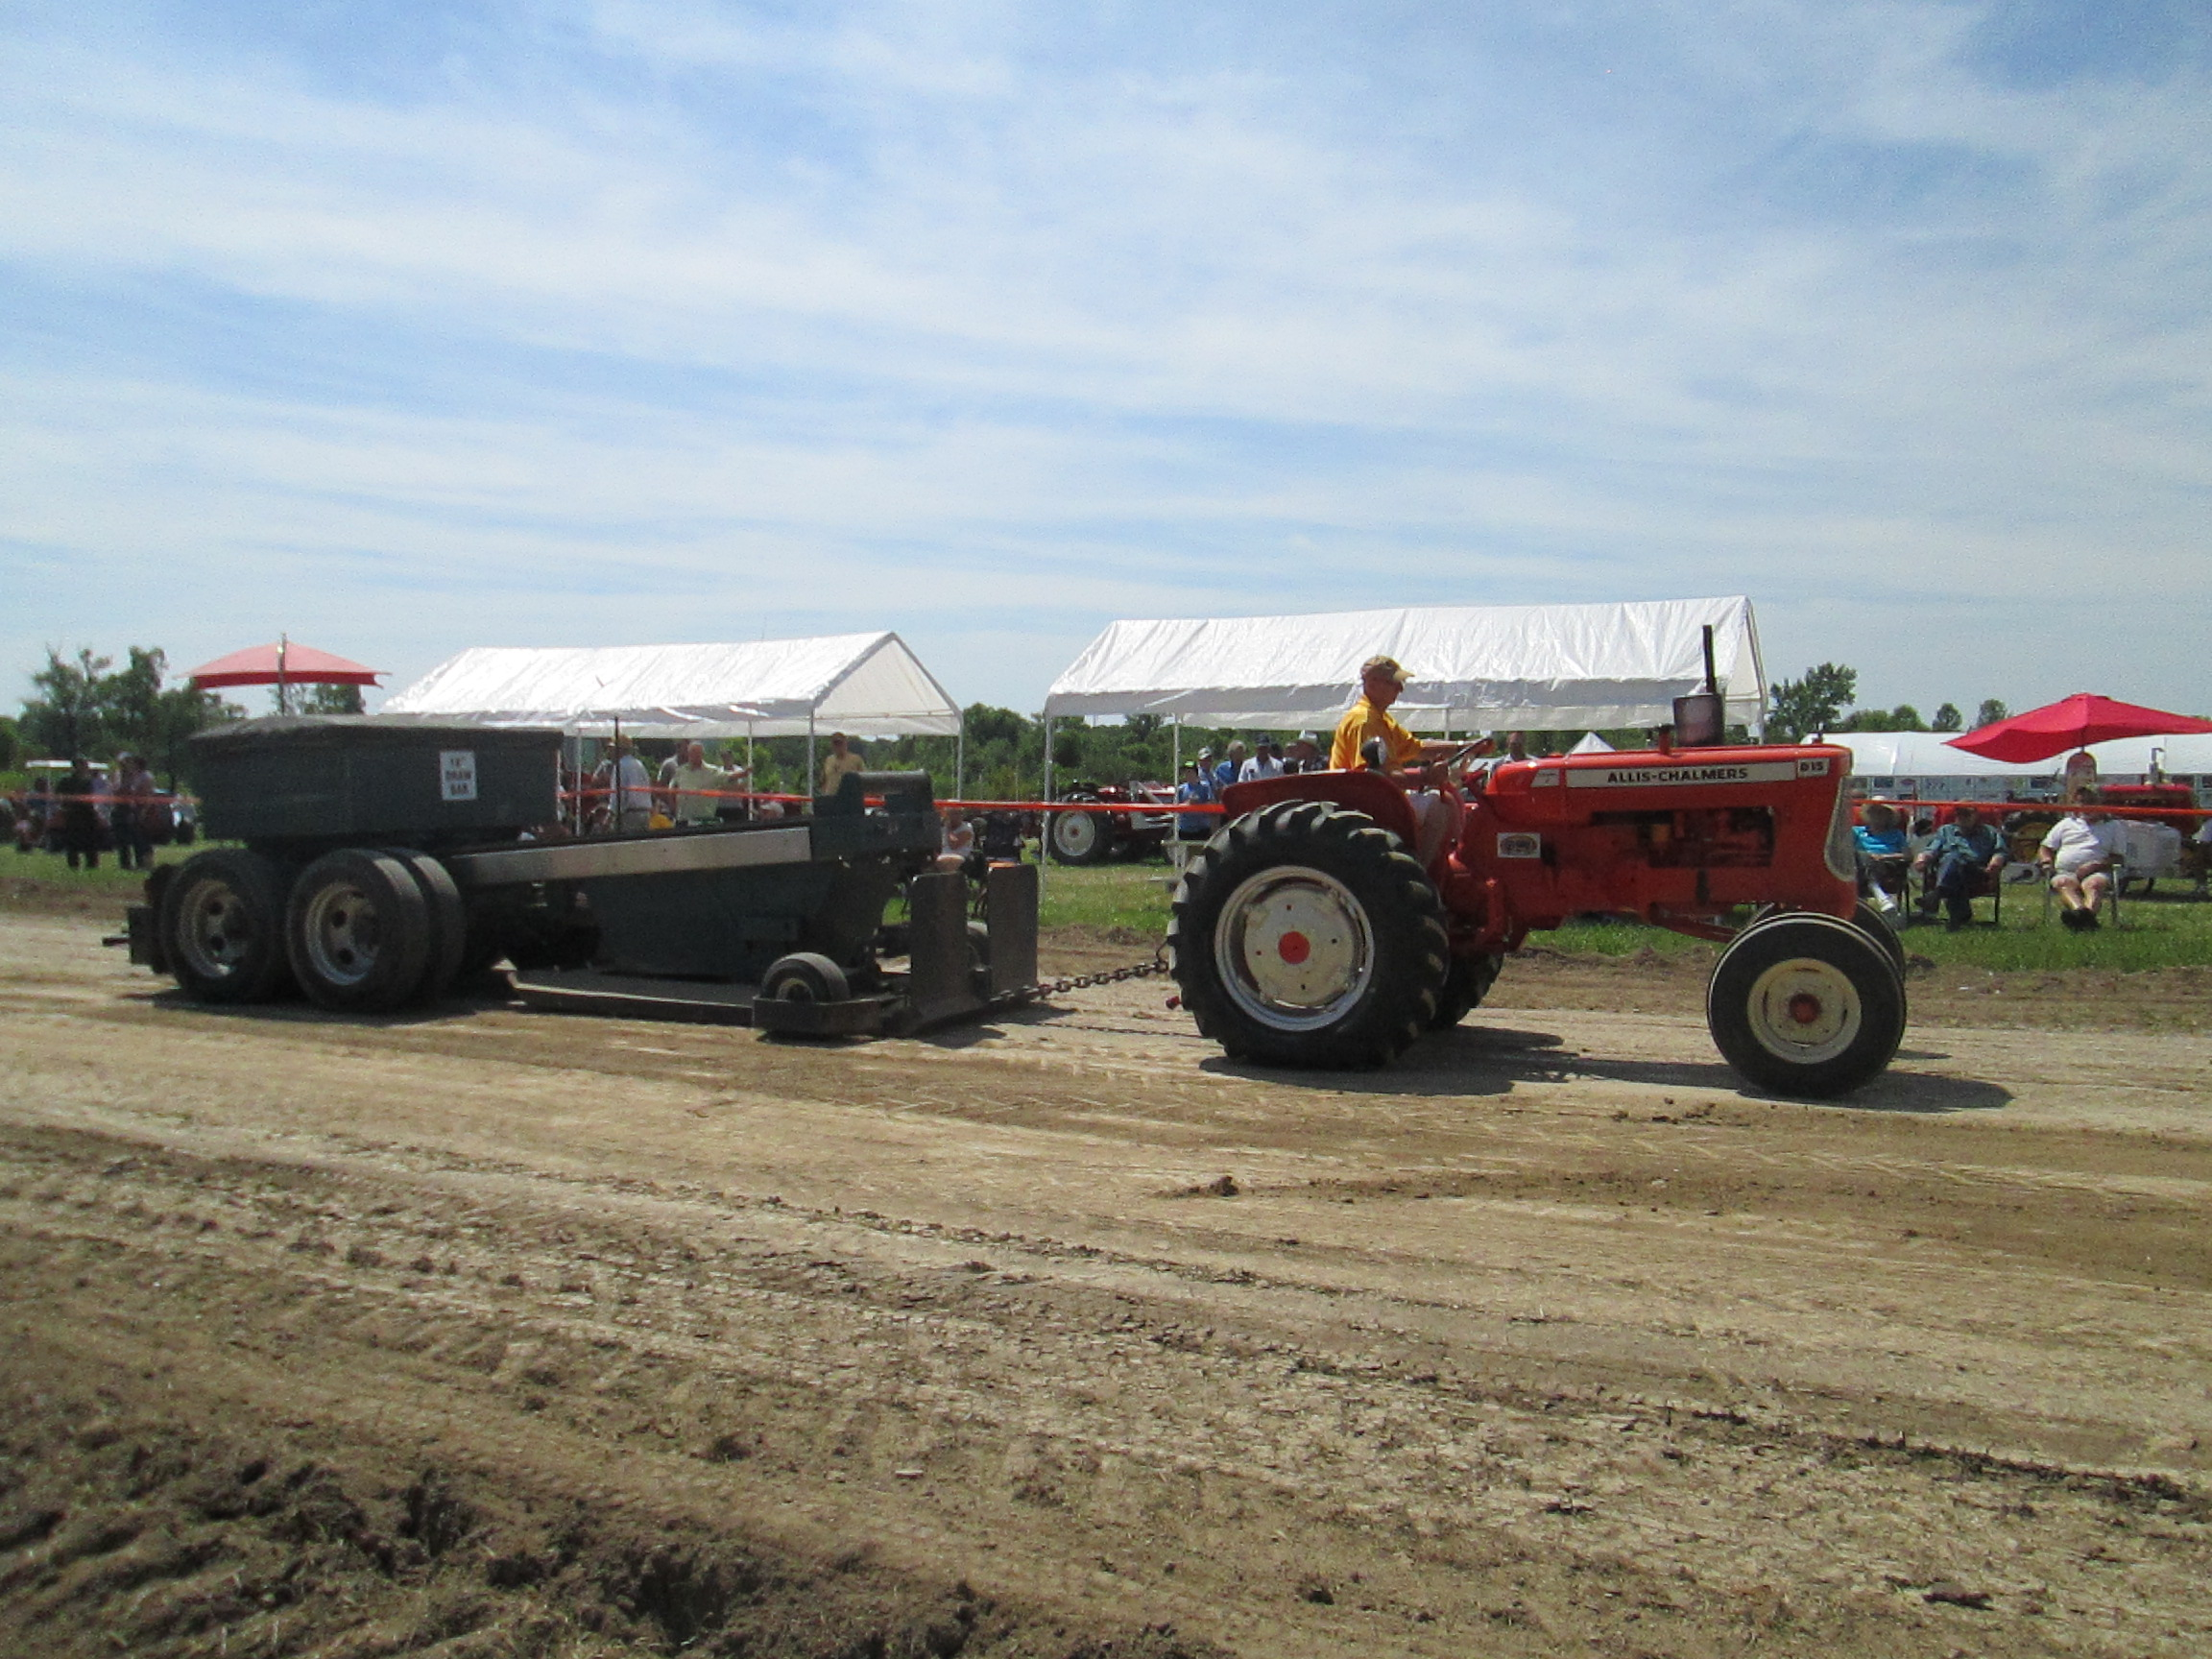 Grand River Antique Society – Garden Tractor Pulling Sled Plans